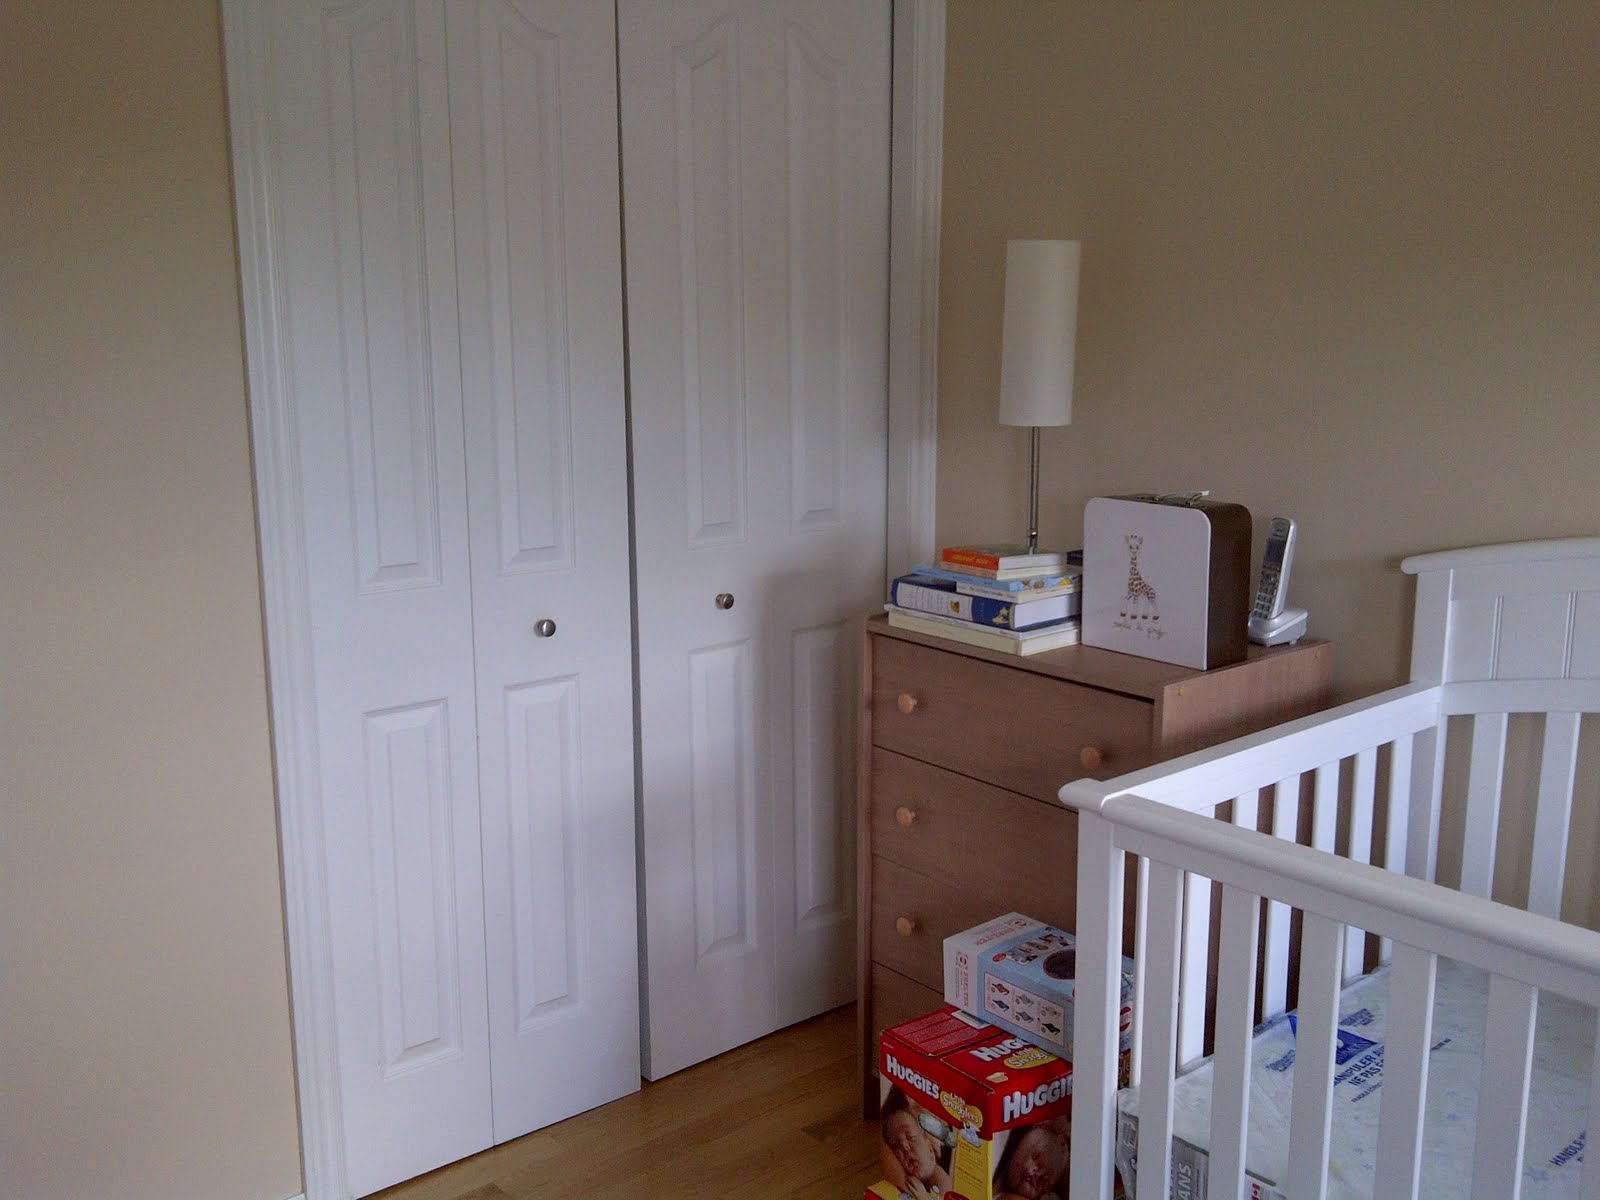 Crib for sale halifax - As You Can See We Ve Got A Bit Of A Start We Have A Crib A Rubber Giraffe A Pooh Bear Some Books Diapers A Sling And A Car Seat Progress